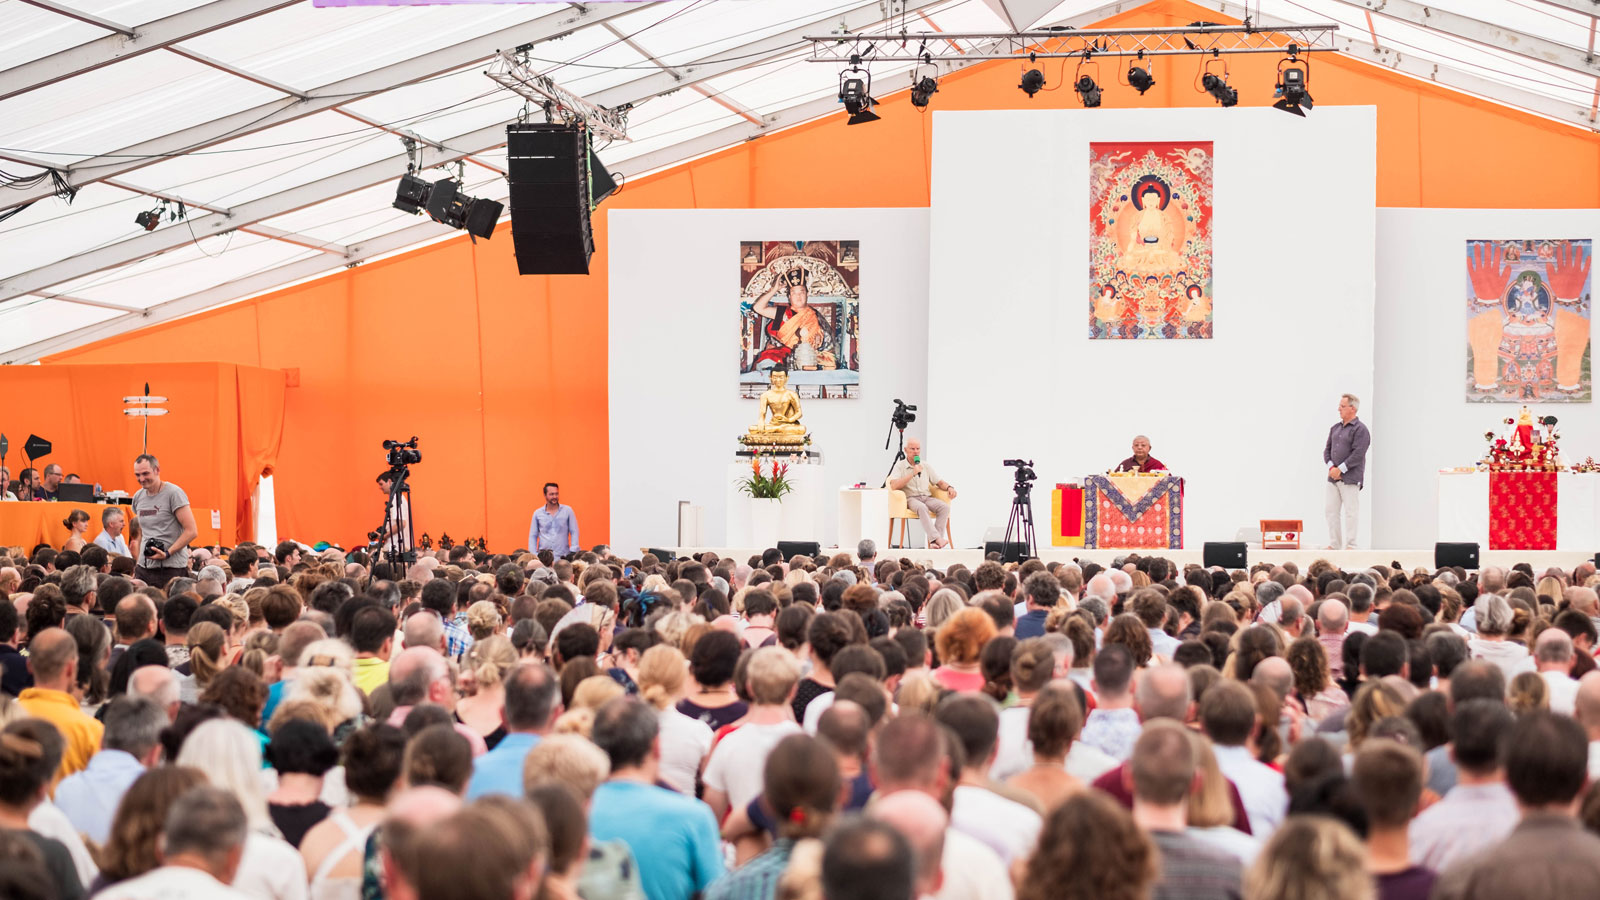 Buddhists from over 50 countries attend the Summer Course in Immenstadt